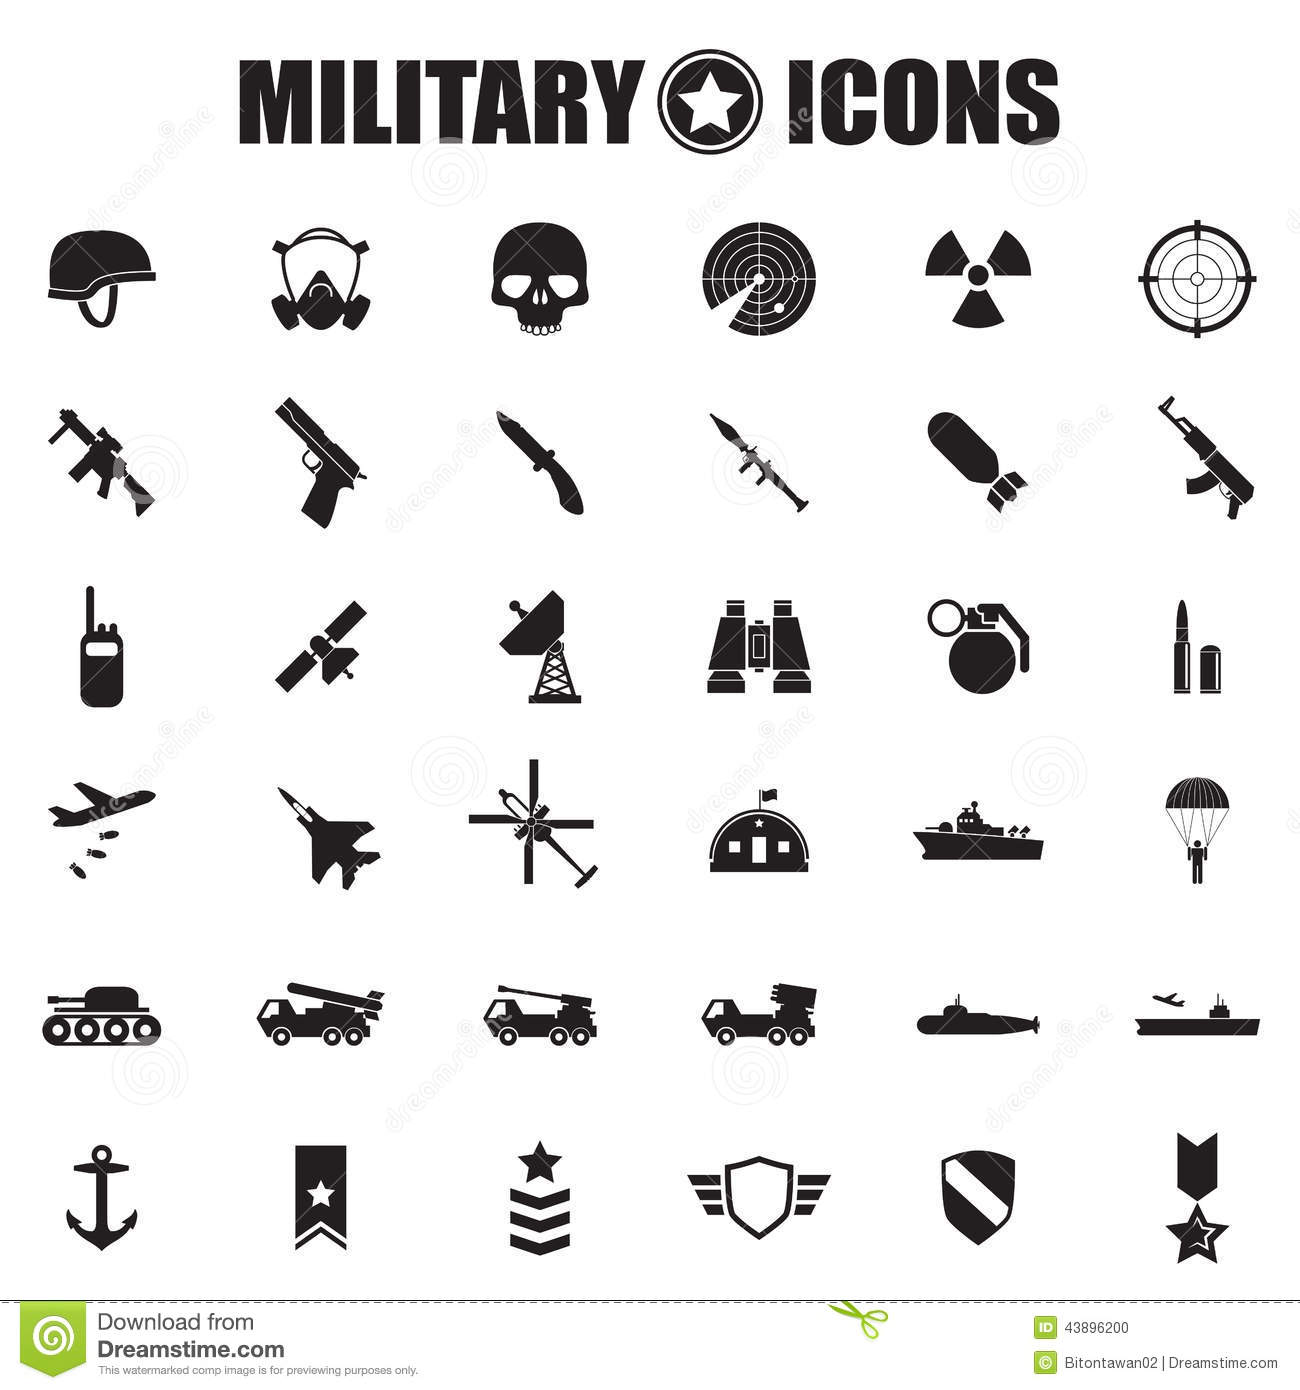 Military Icons and Symbols